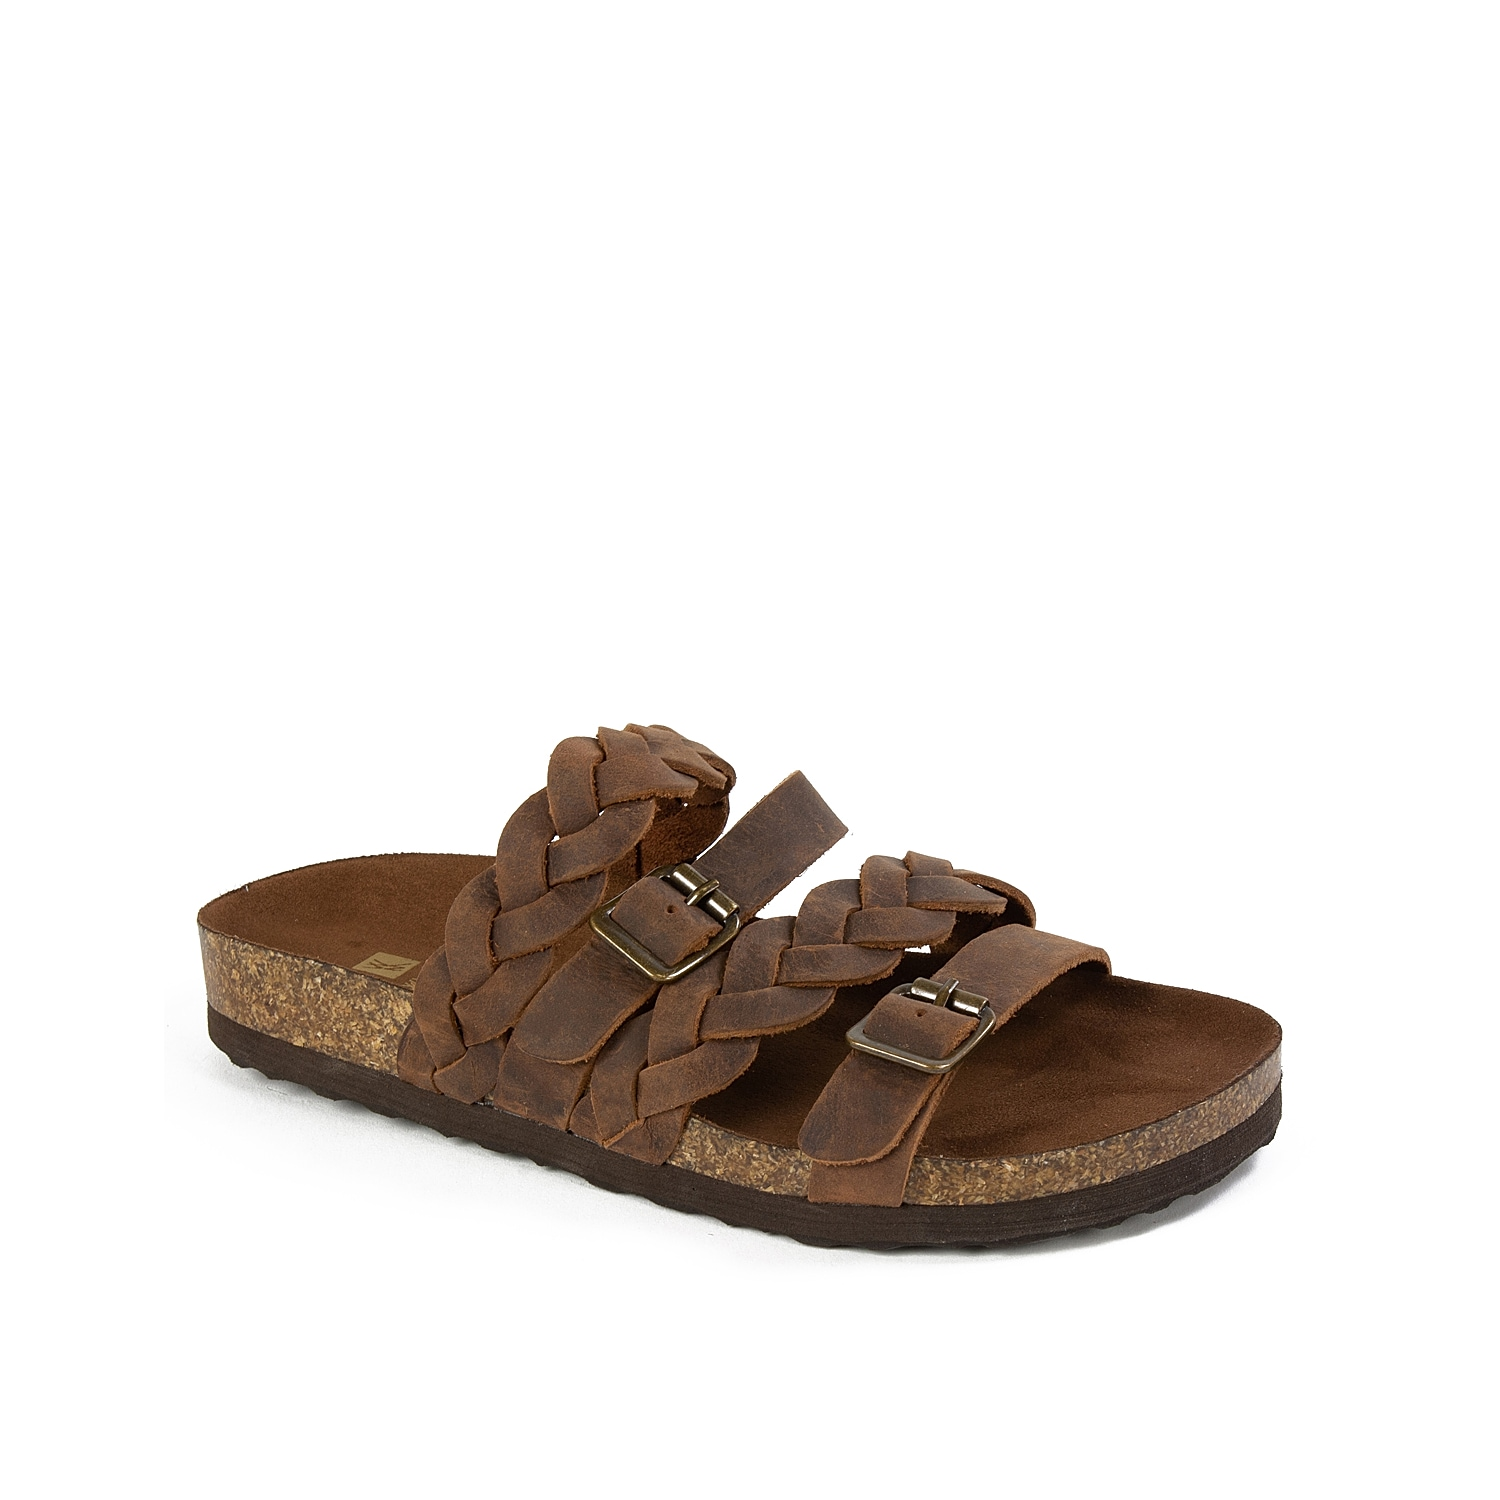 Show off your laid-back summer style with the Holland sandal from White Mountain. Braided straps and buckle accents will make this pair a modern yet casual addition to any outfit.